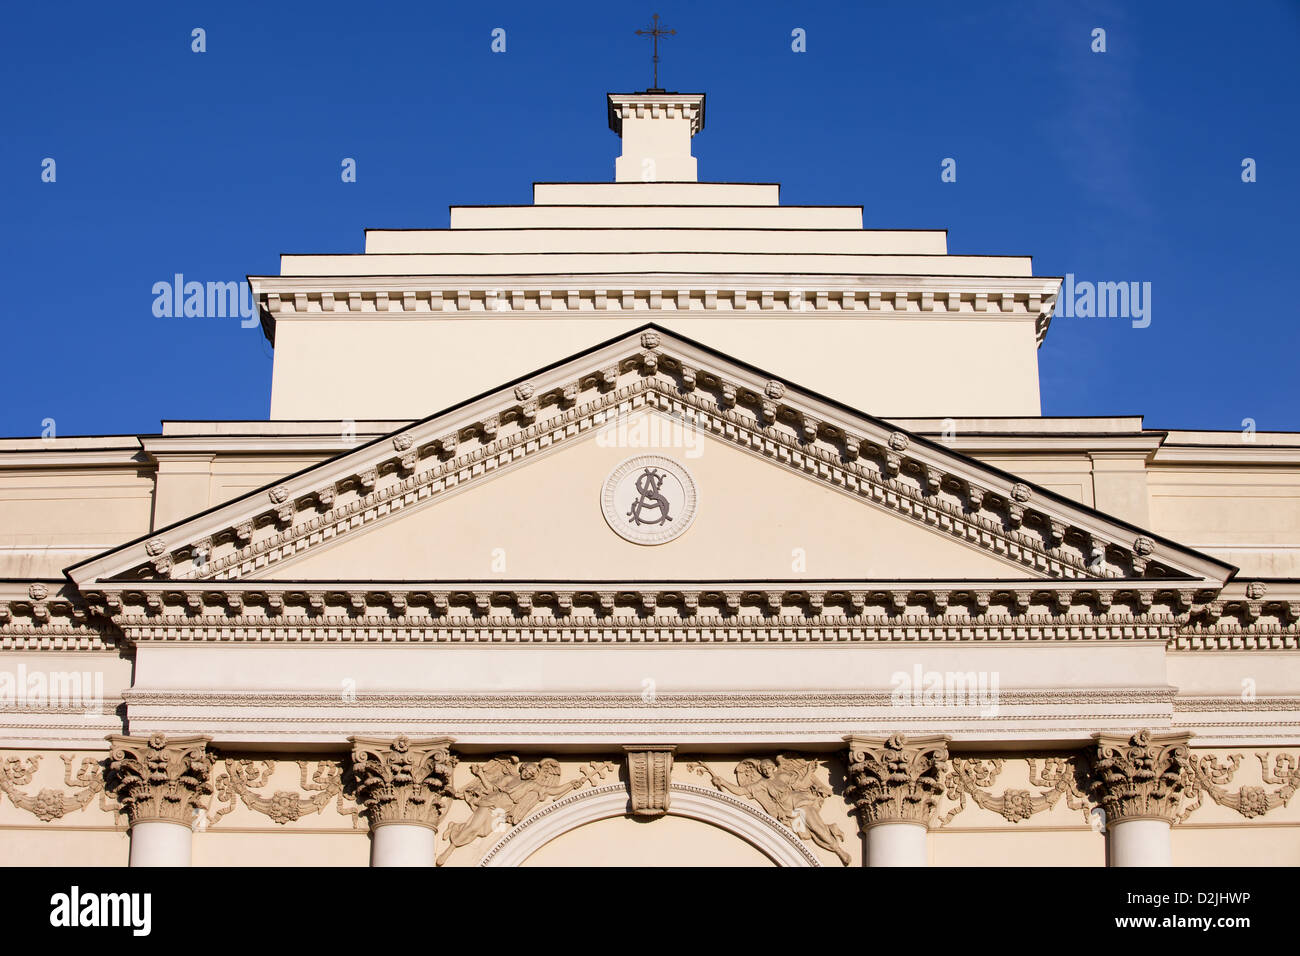 Neoclassical St. Anne's Church architectural details, built in 18th century in Warsaw, Poland. - Stock Image